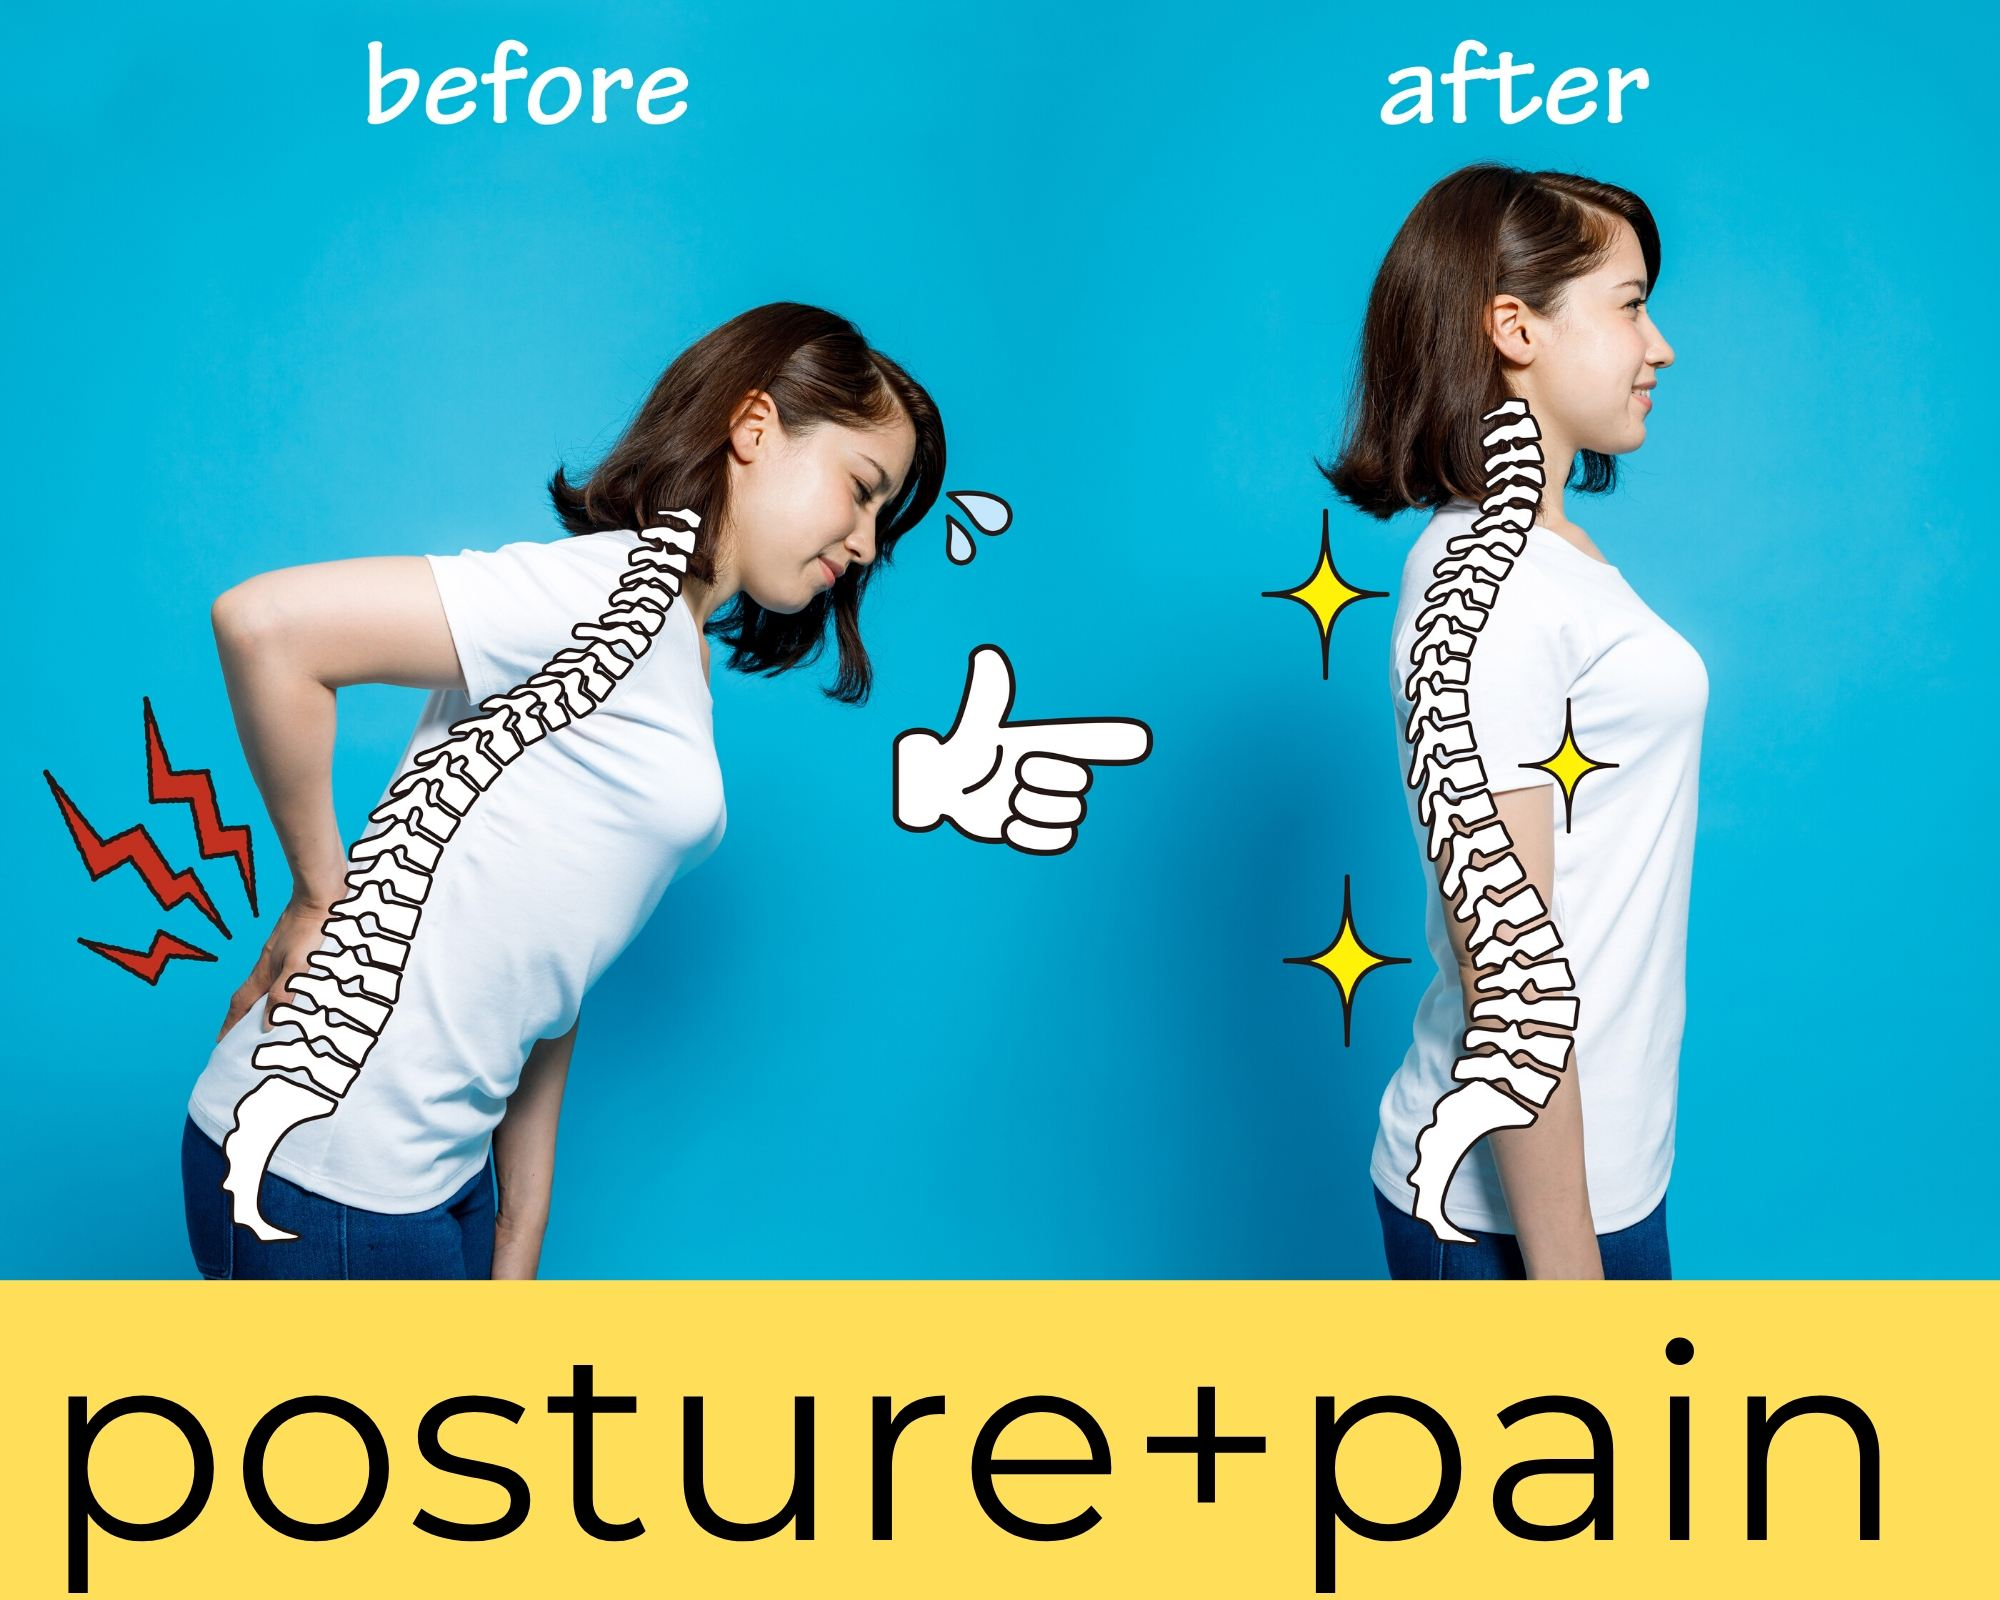 Posture and pain relief